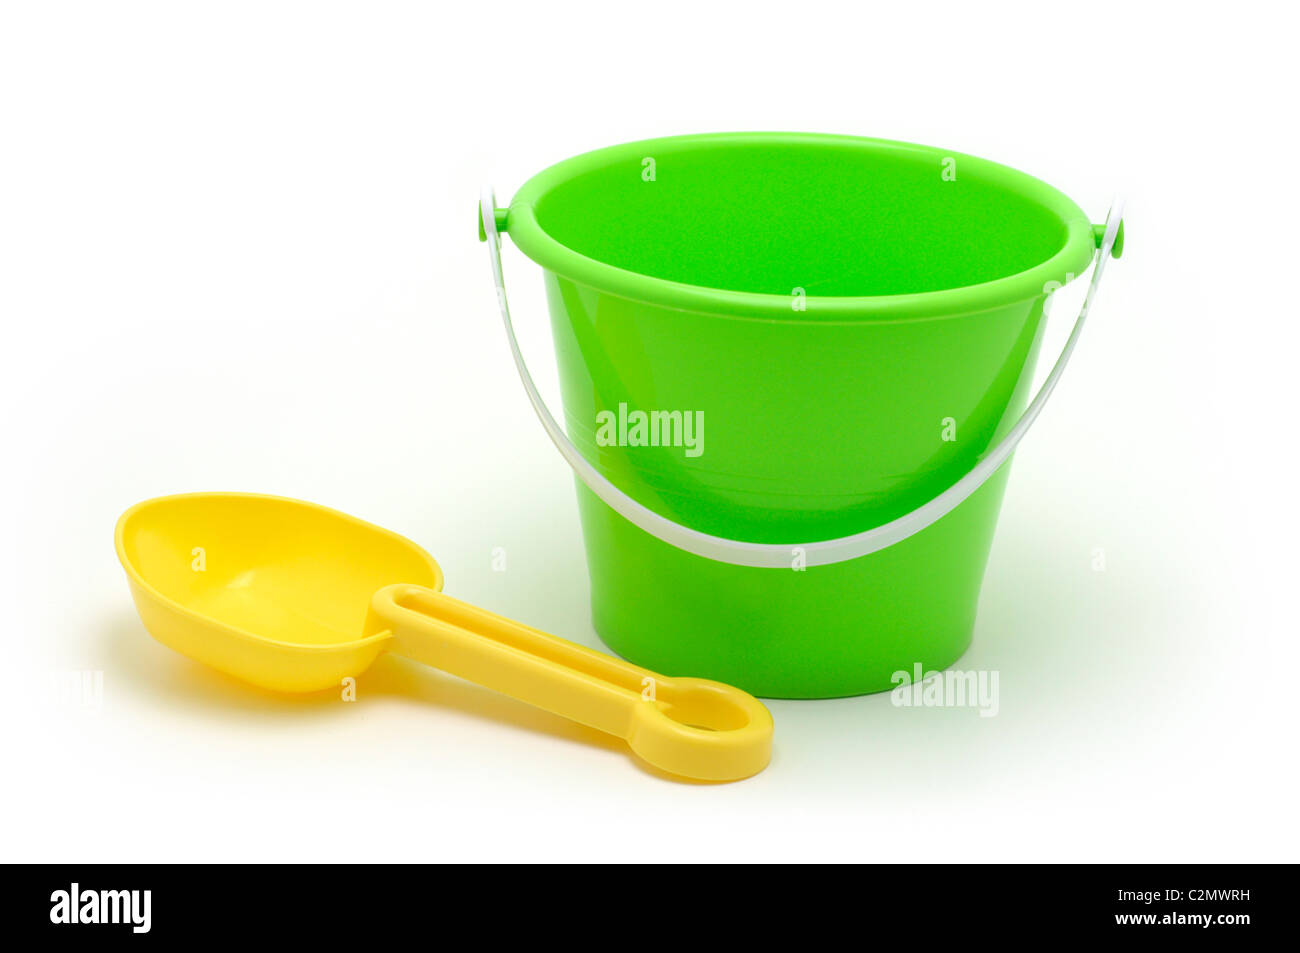 Bucket / Pail and Spade, Children's Toys - Stock Image